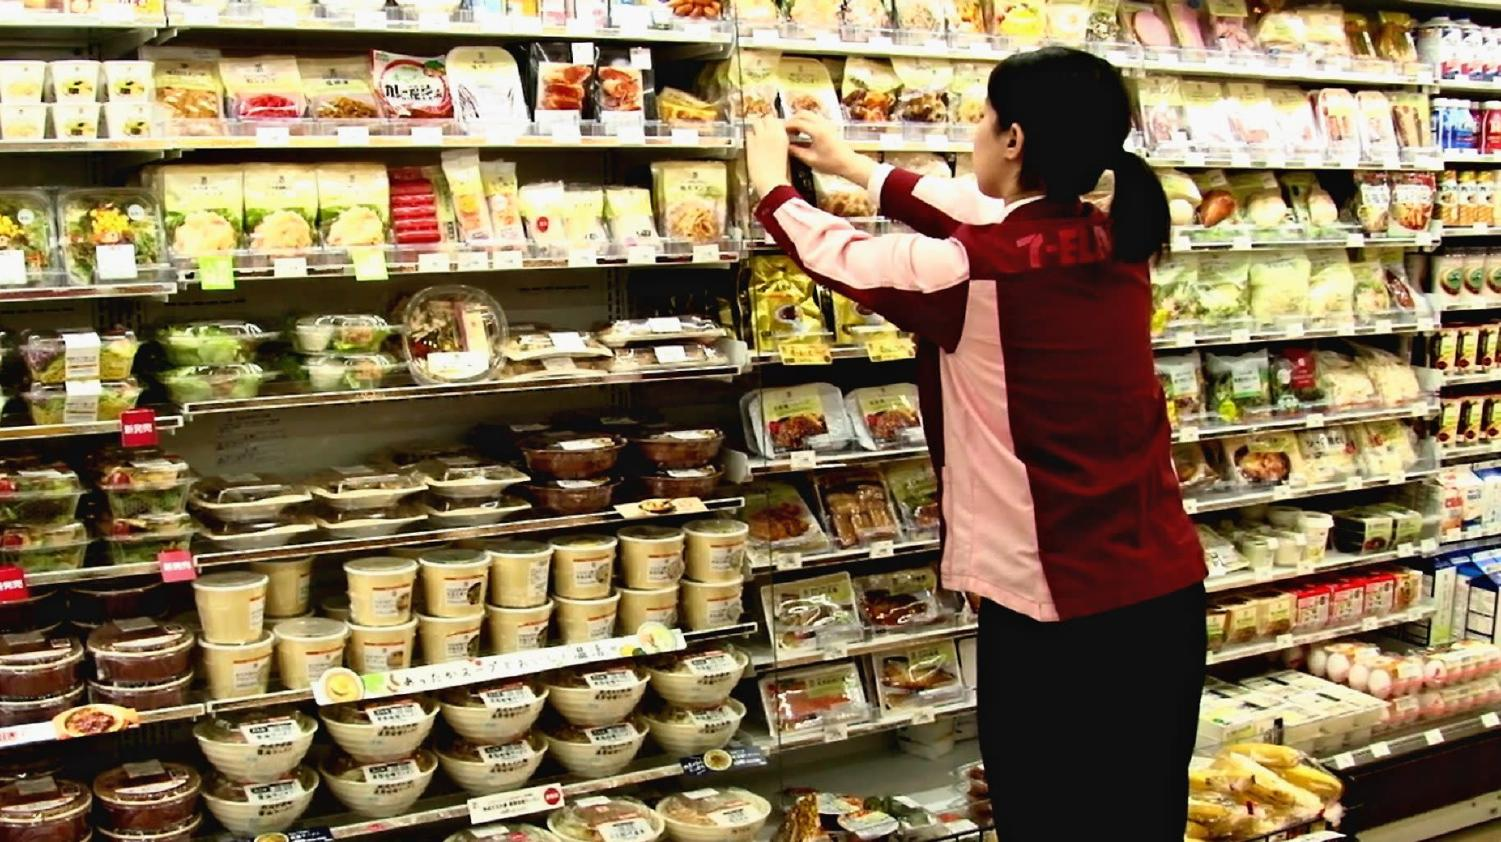 Japanese saleswomen are having their outfits restricted by their employers.